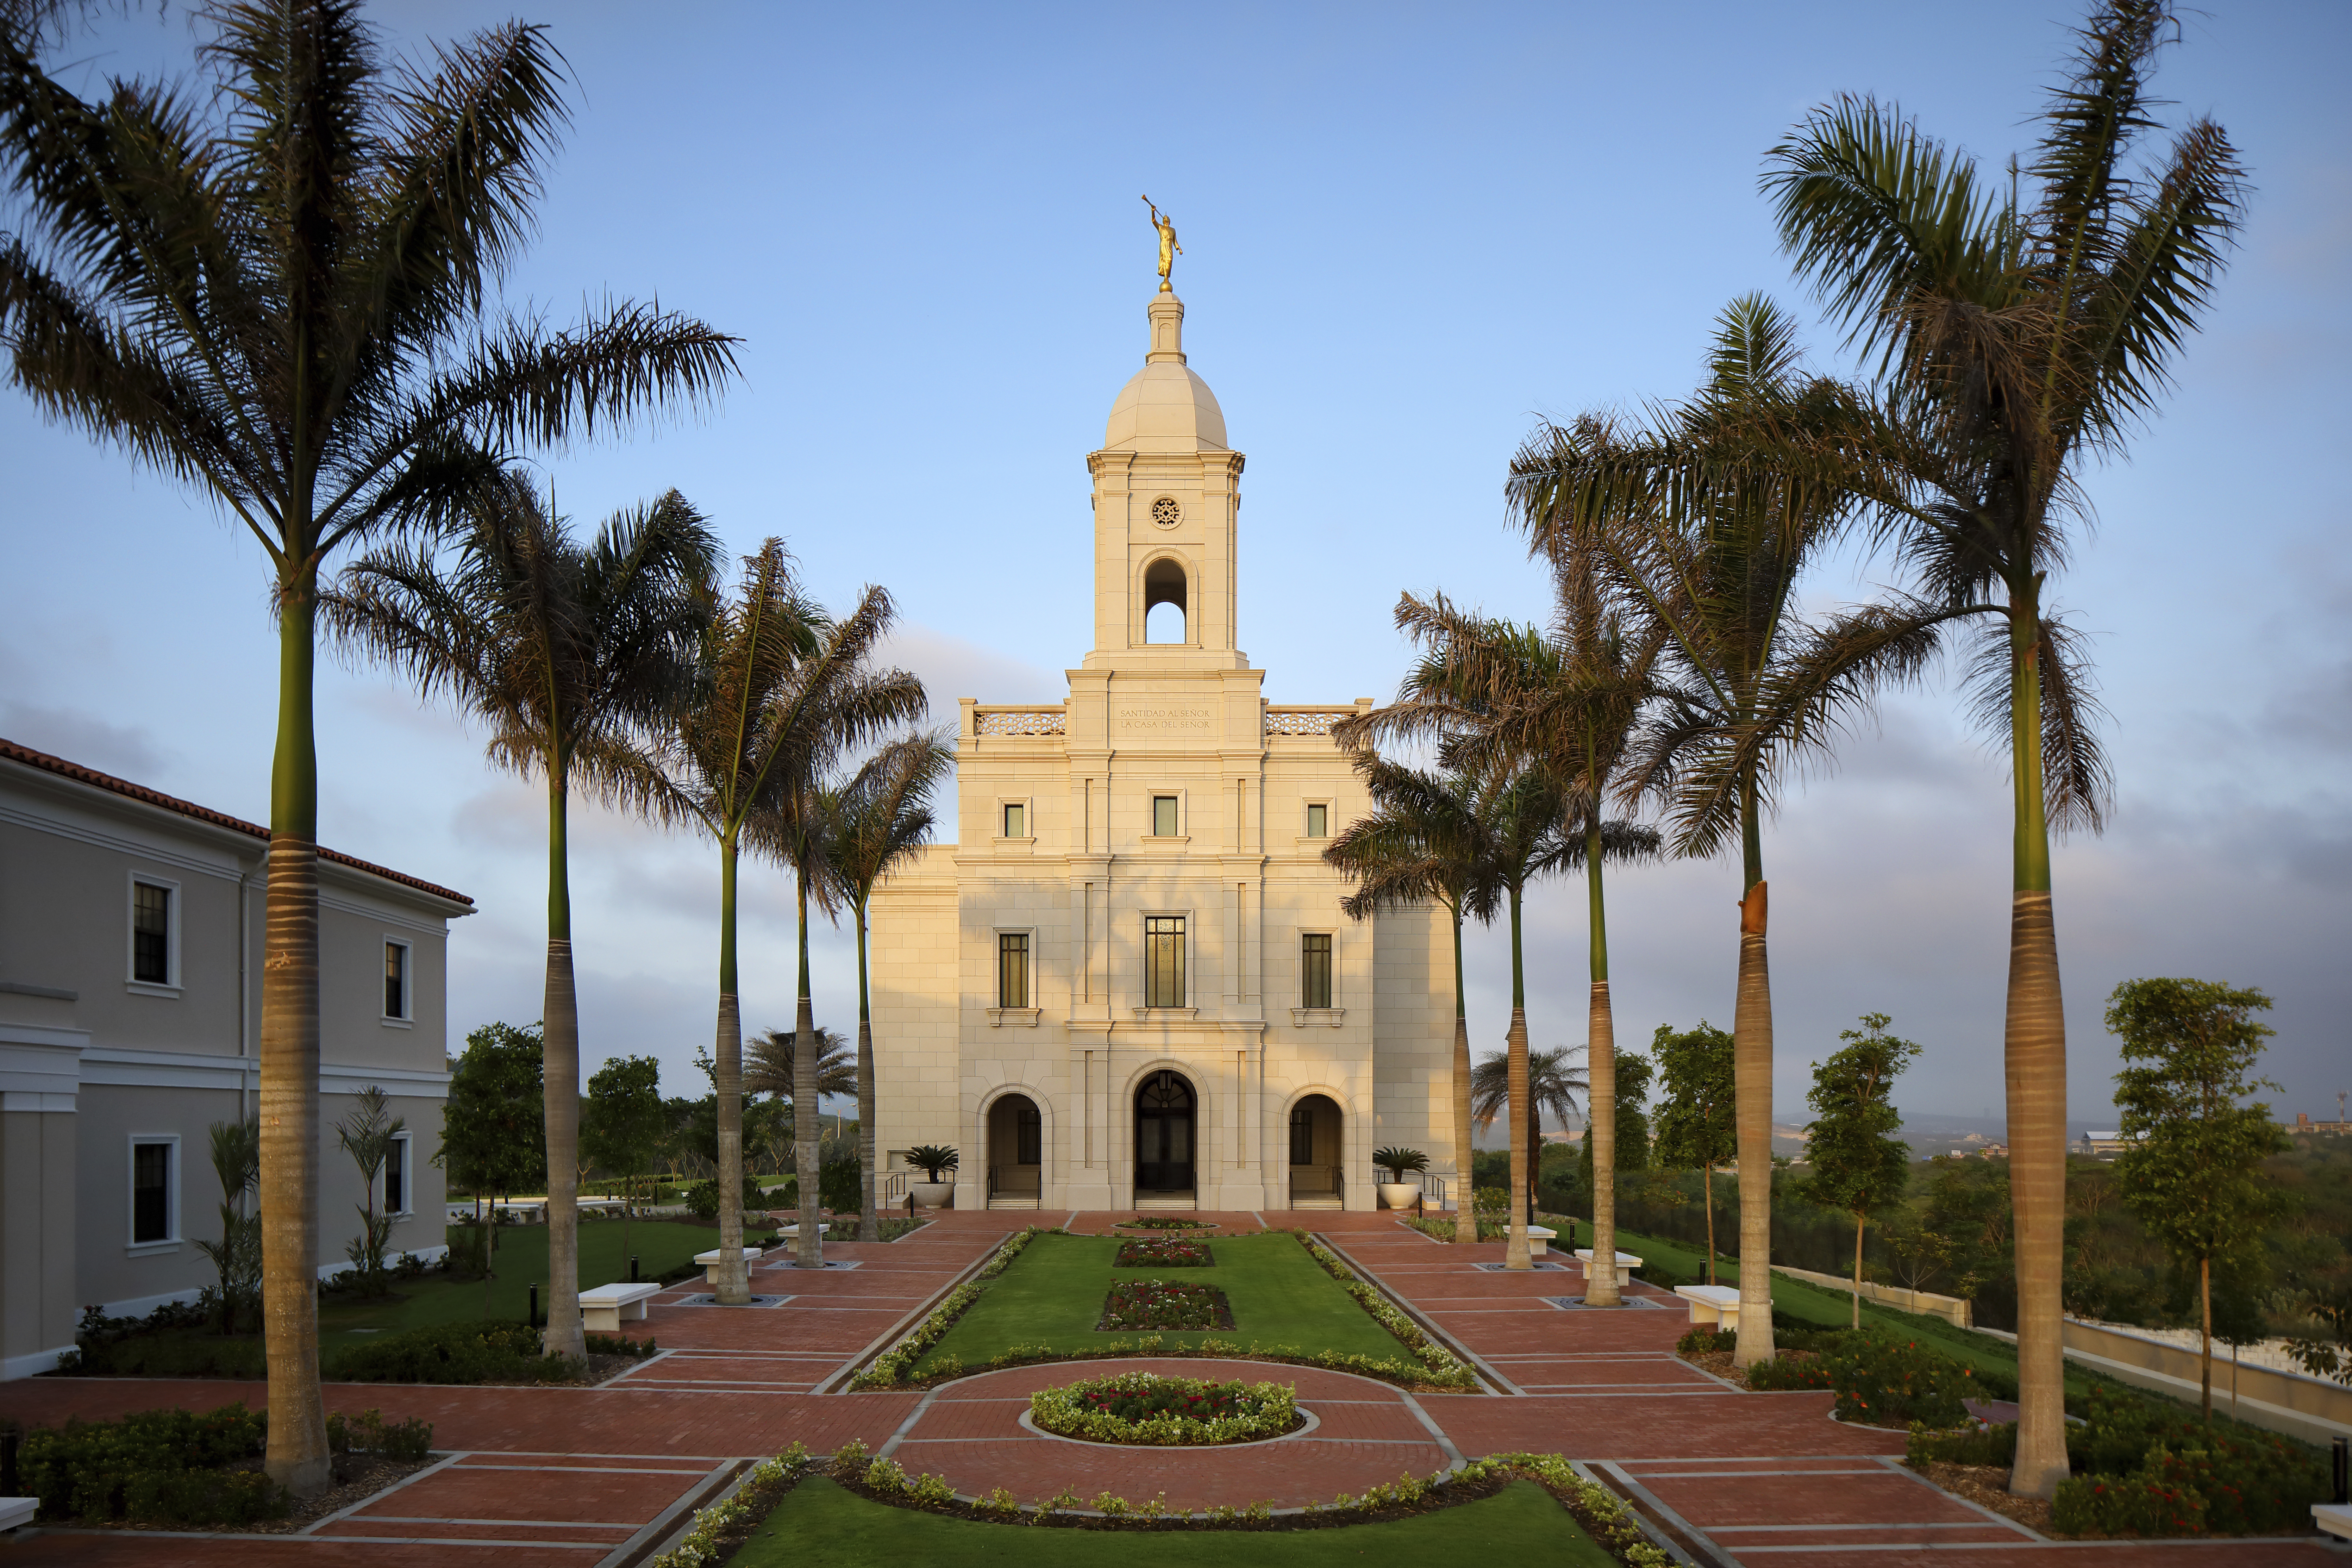 A front view of the Barranquilla Colombia Temple, with palm trees lining the walkway to the entrance.